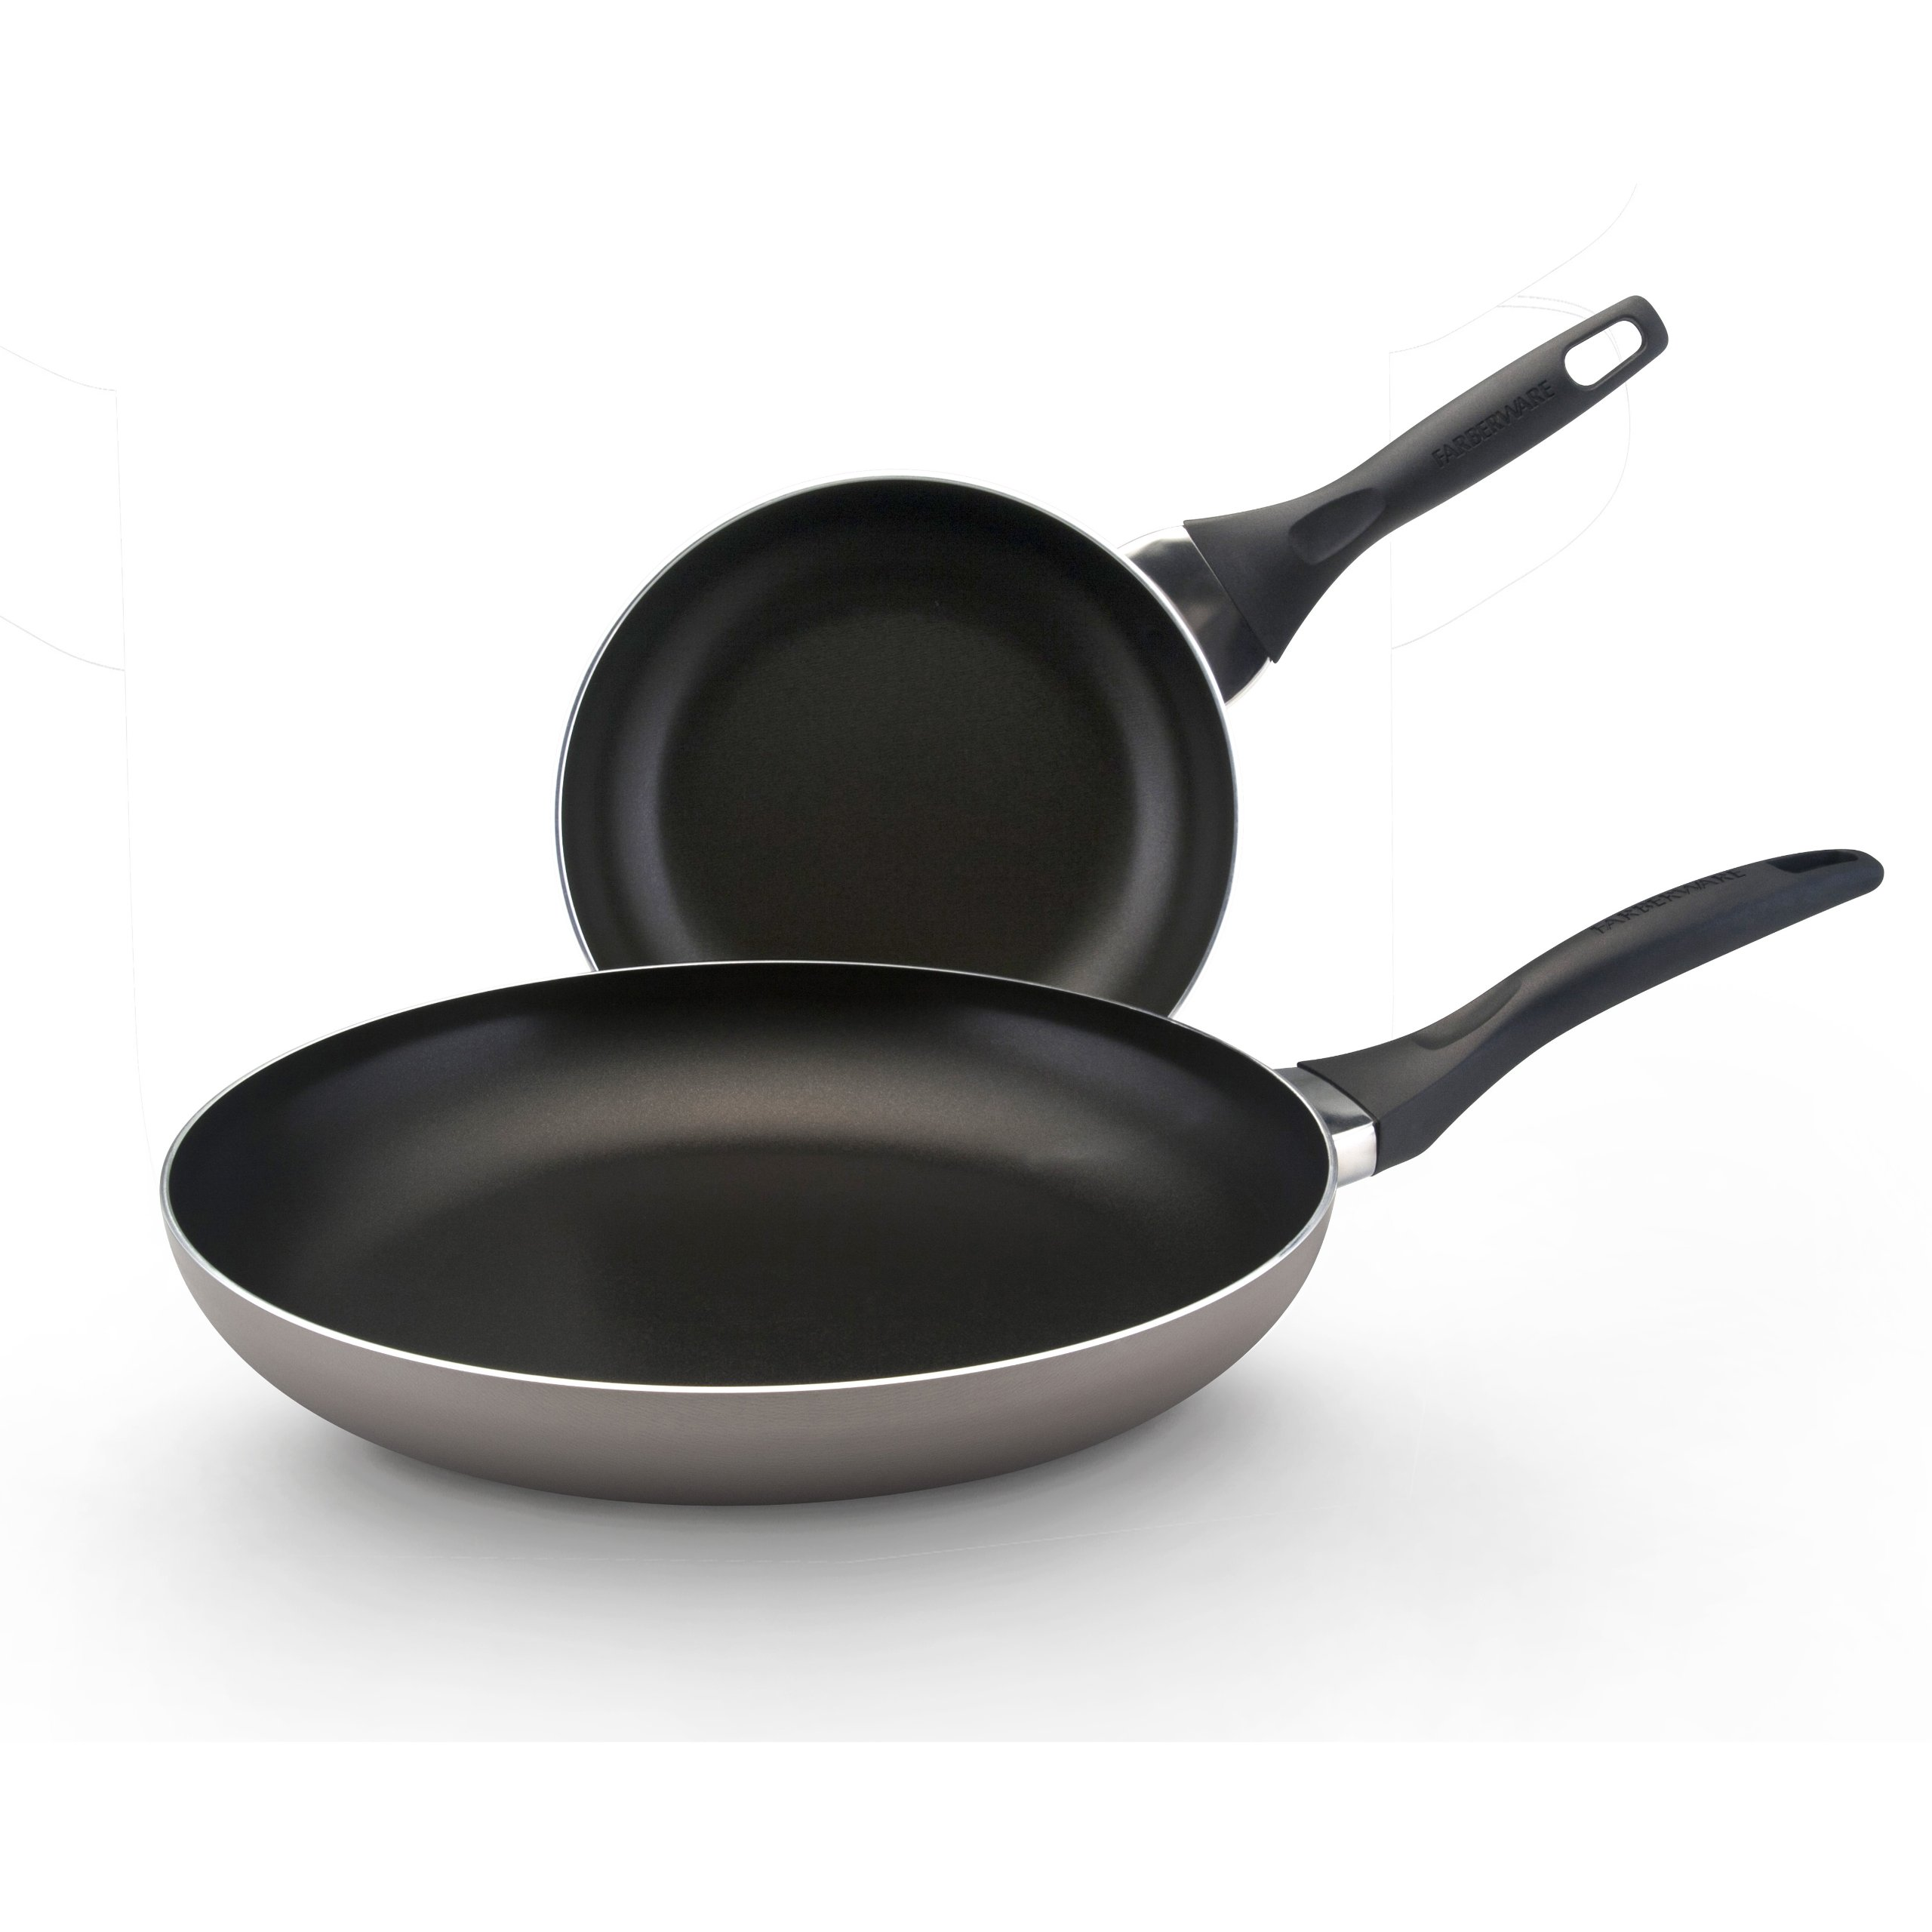 Farberware Dishwasher Safe Nonstick Aluminum 8-Inch and 10-Inch Twin PackSkillet Set, Champagne